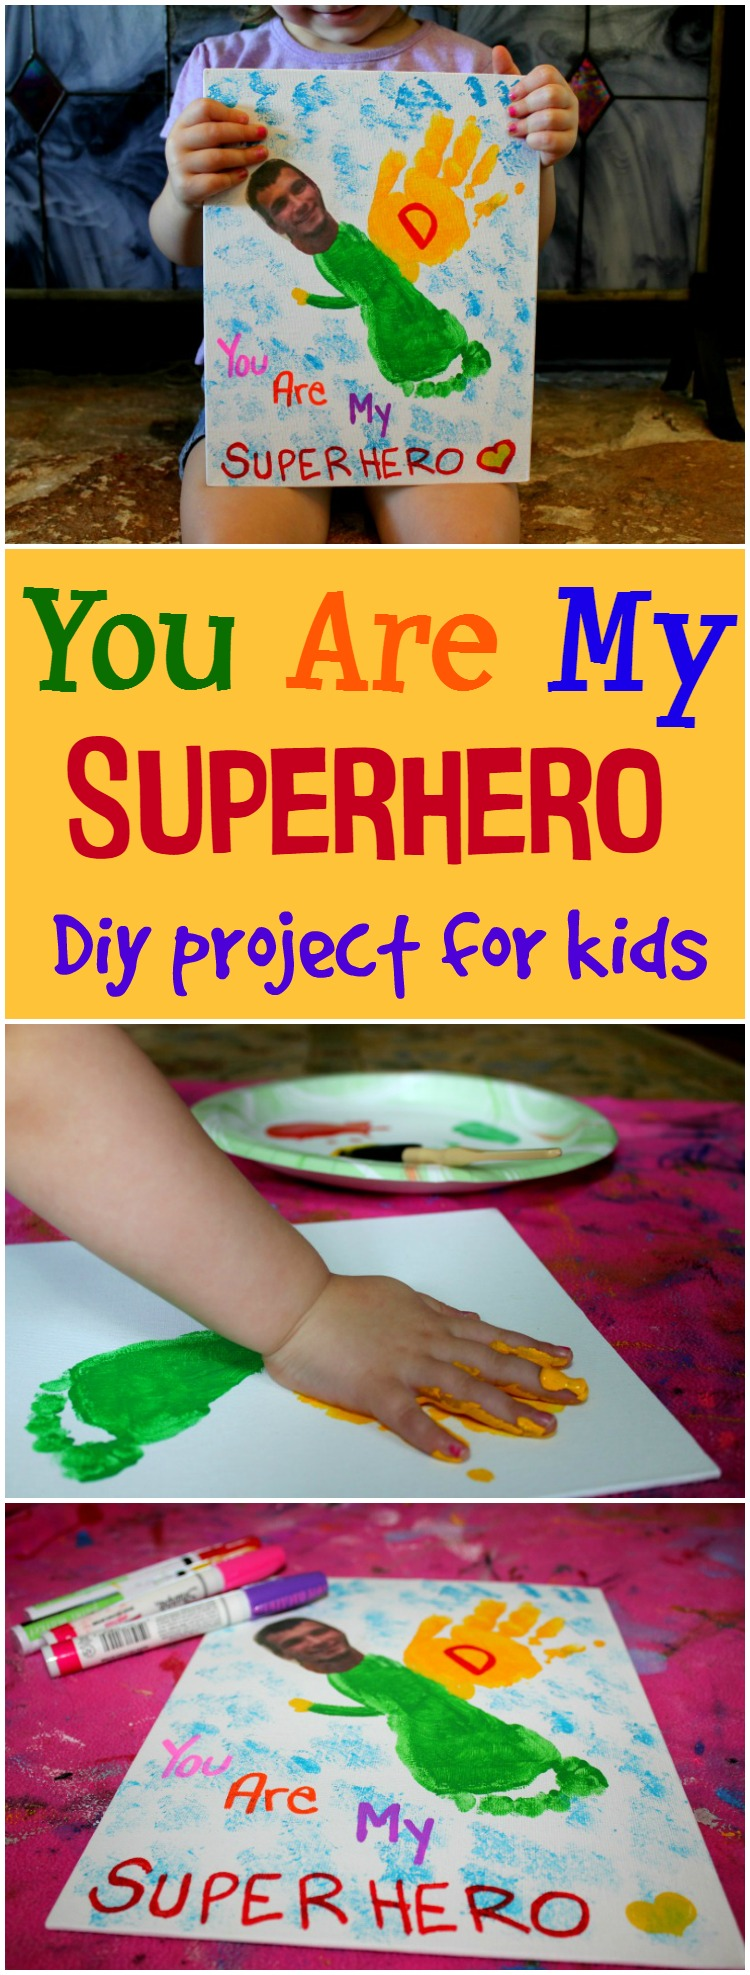 You are my Superhero DIY project for kids